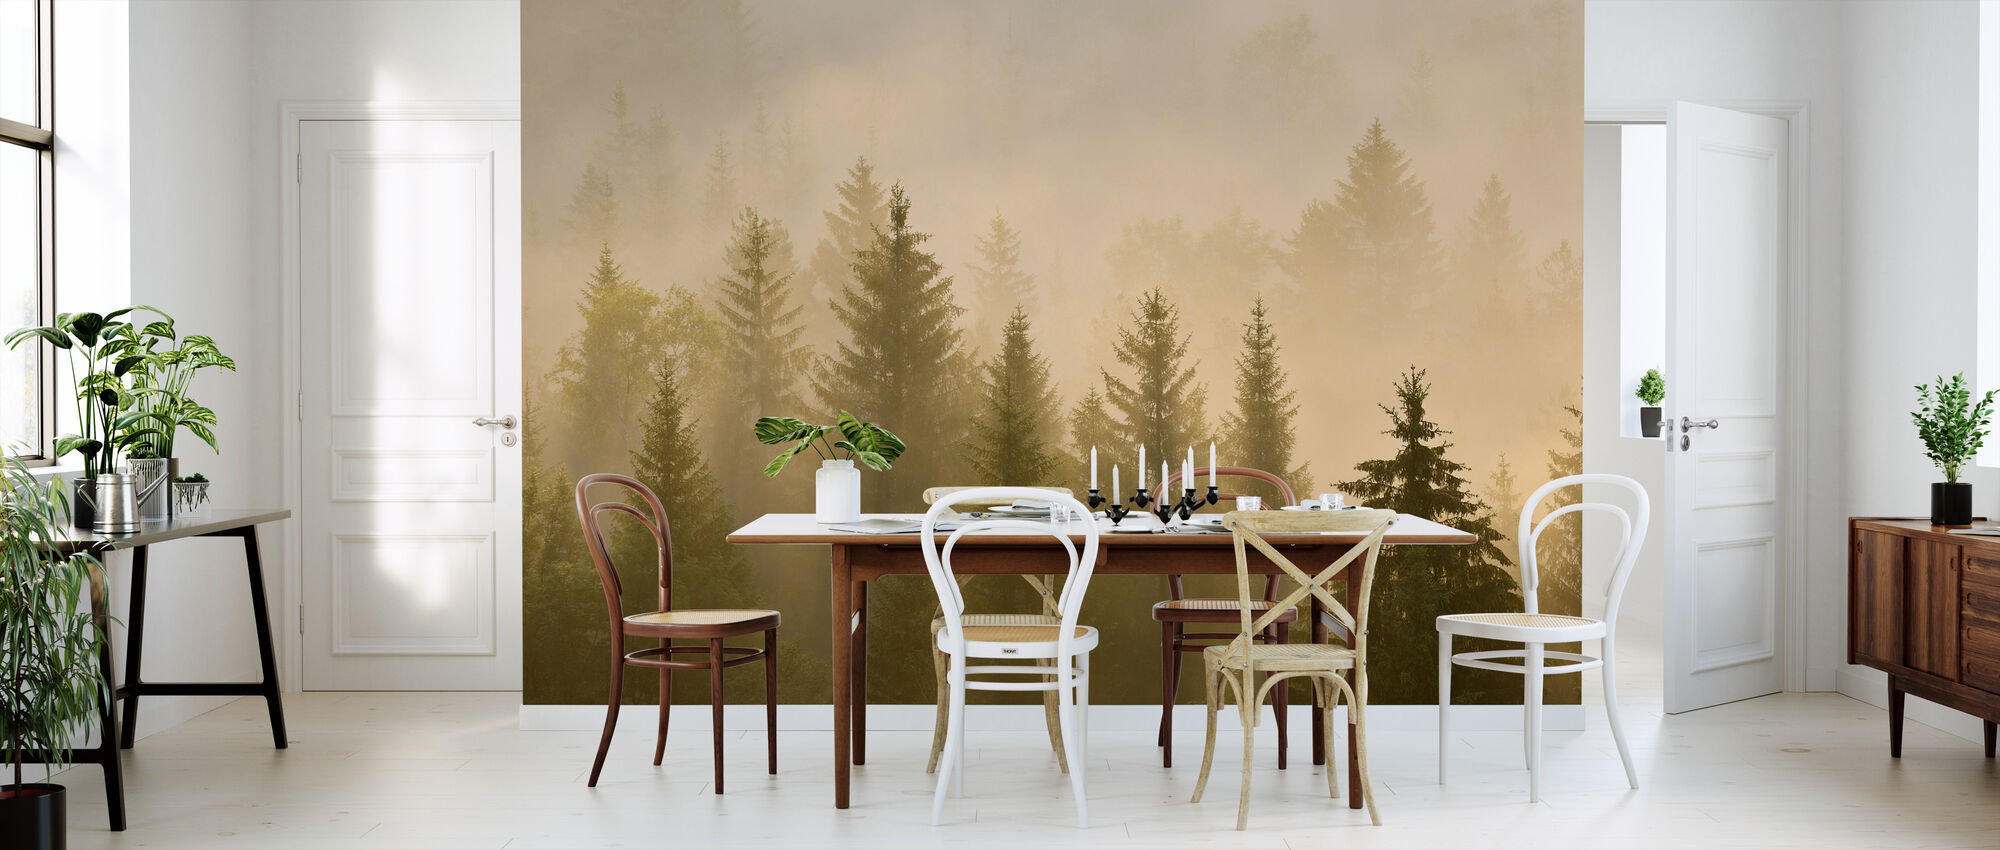 Morning Mist in Bavaria - Wallpaper - Kitchen